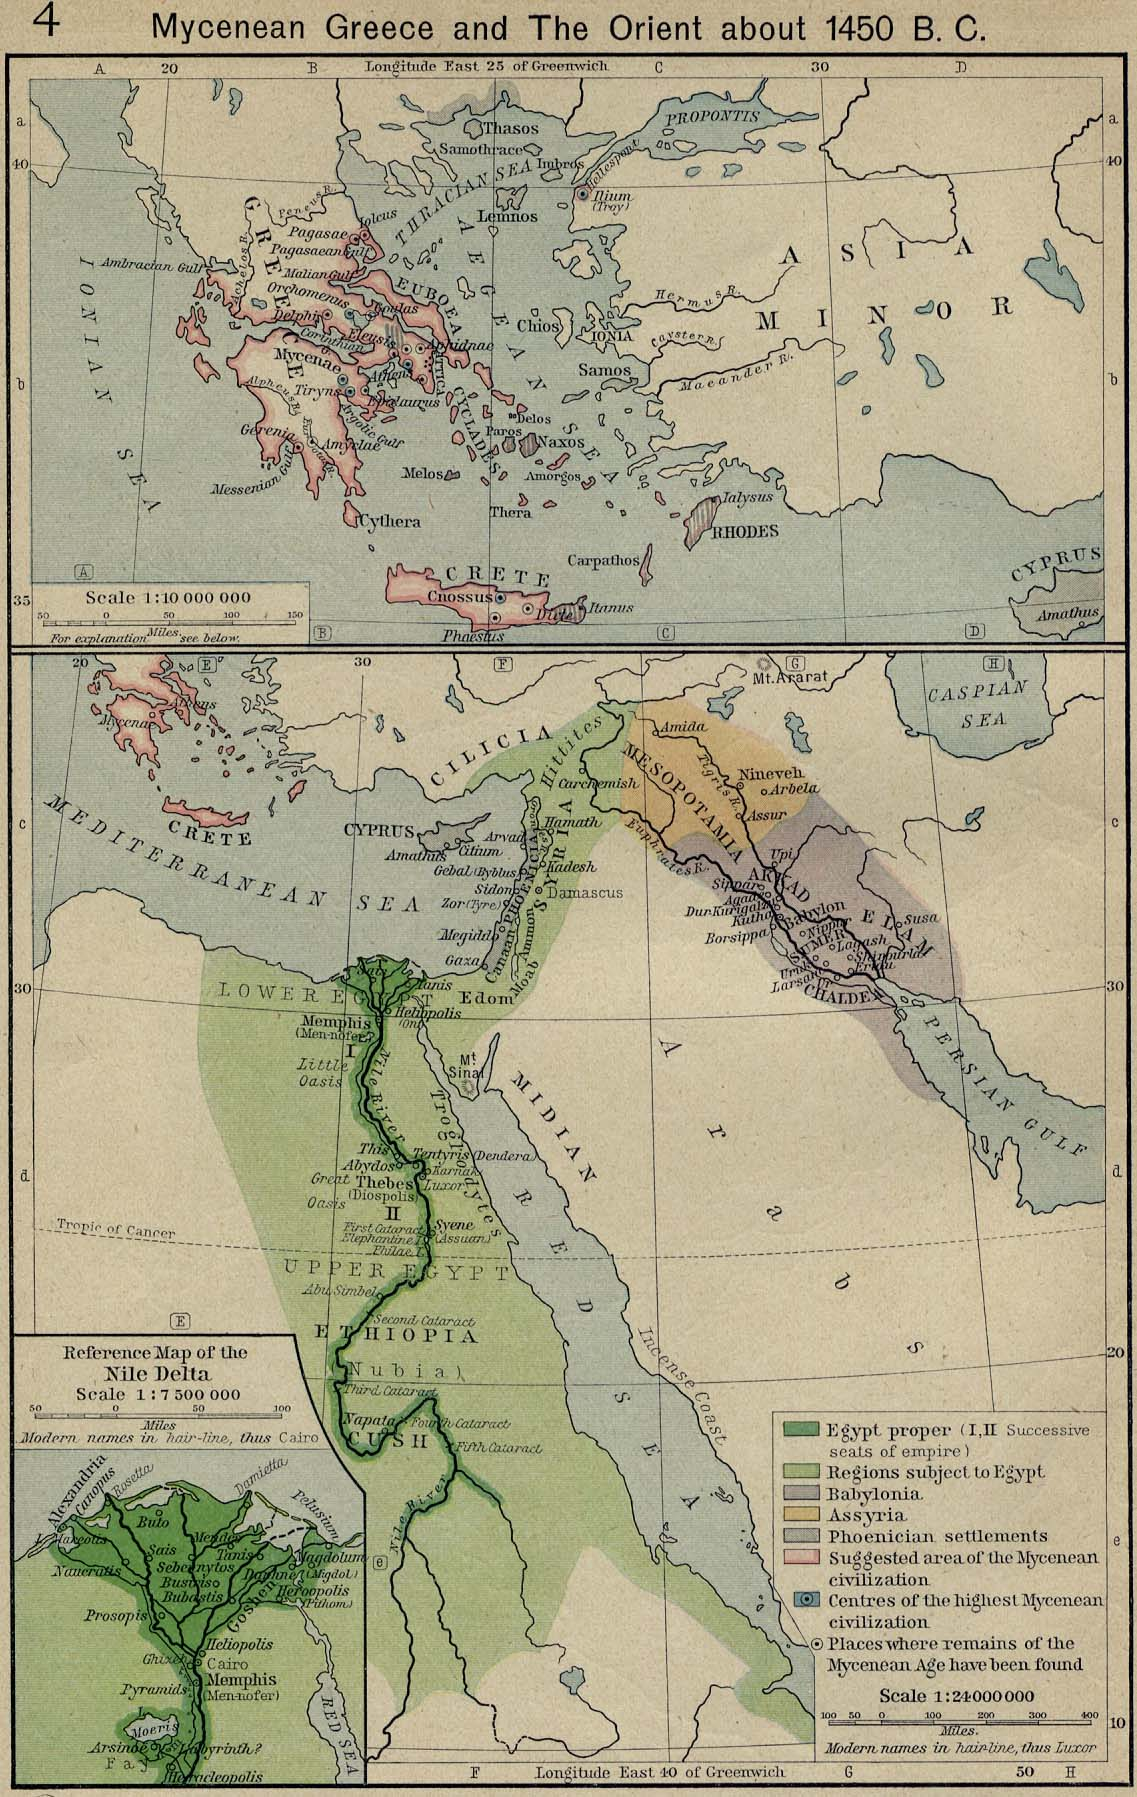 Map of Mycenaean Greece and the Orient about 1450 B.C.